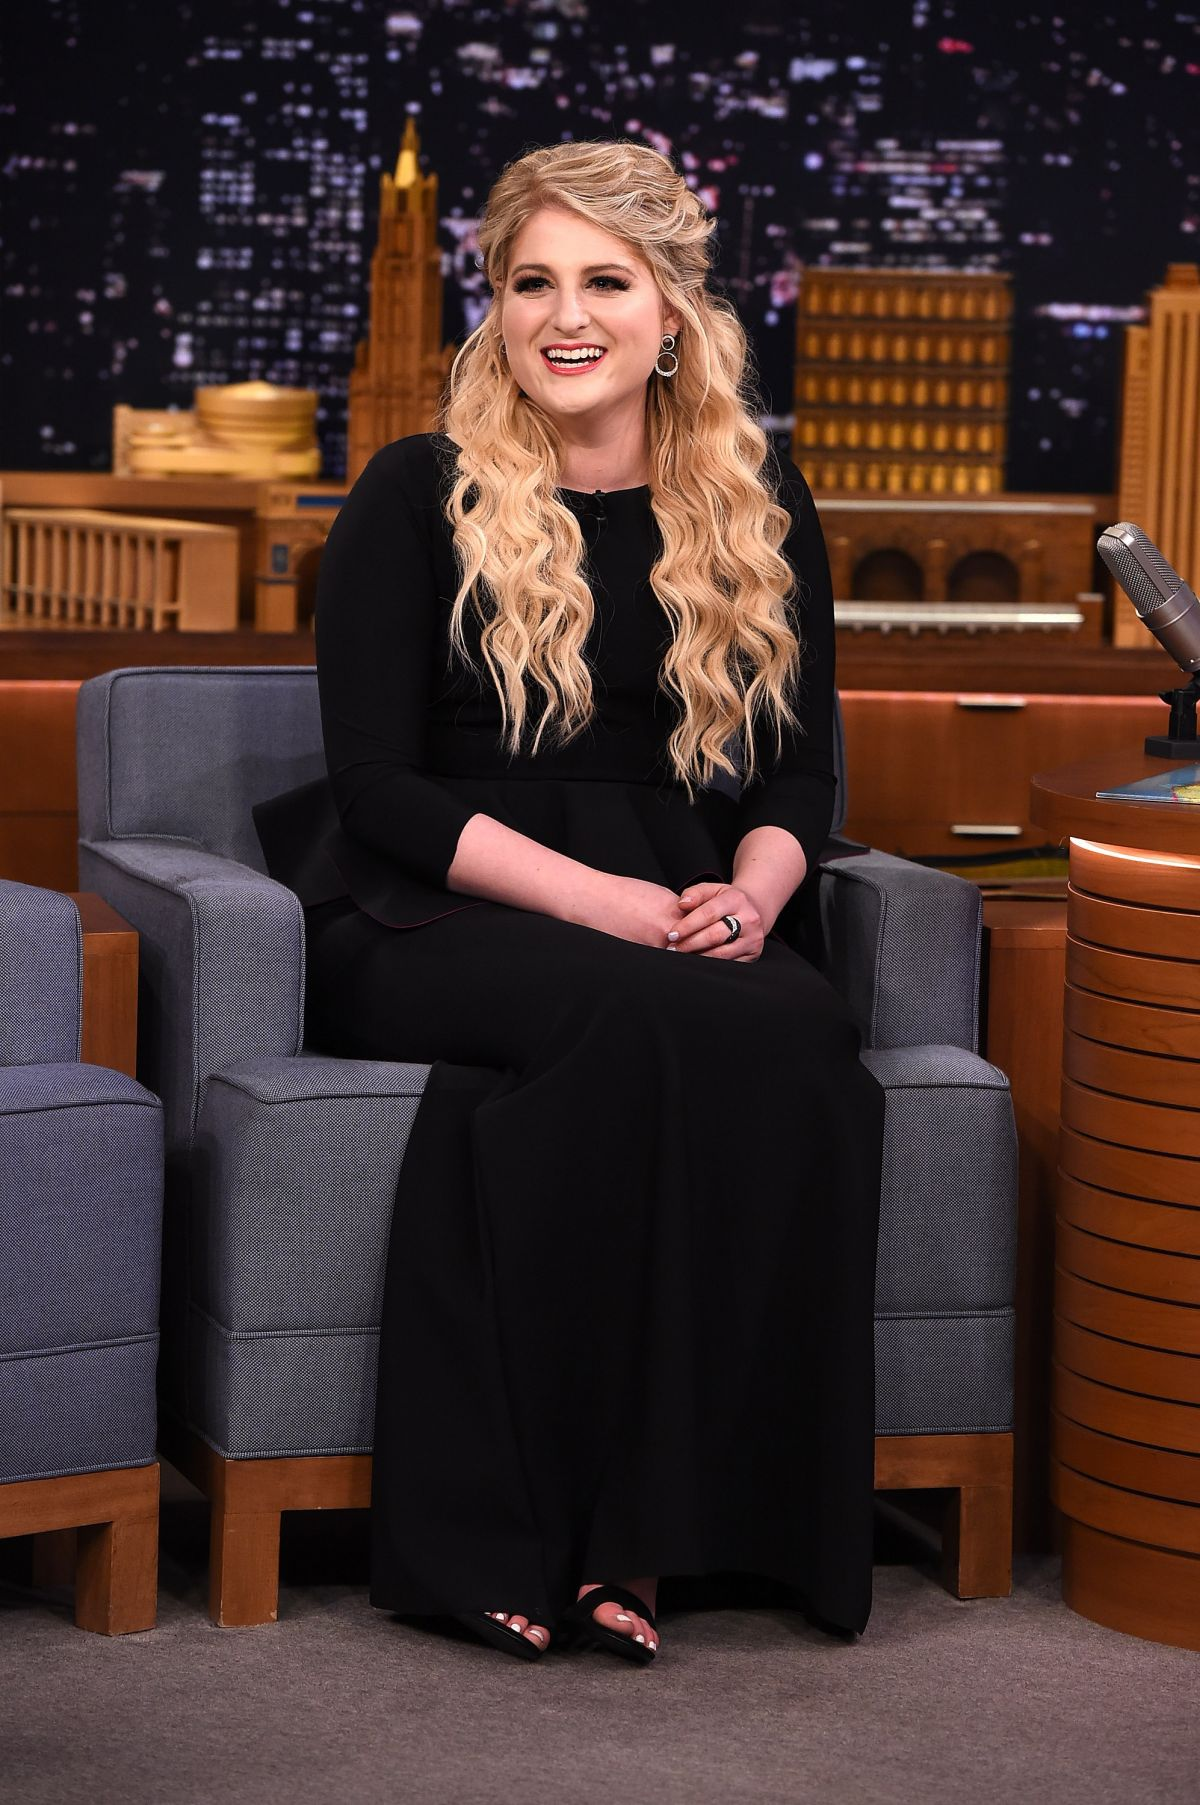 MEGHAN TRAINOR At The Tonight Show With Jimmy Fallon